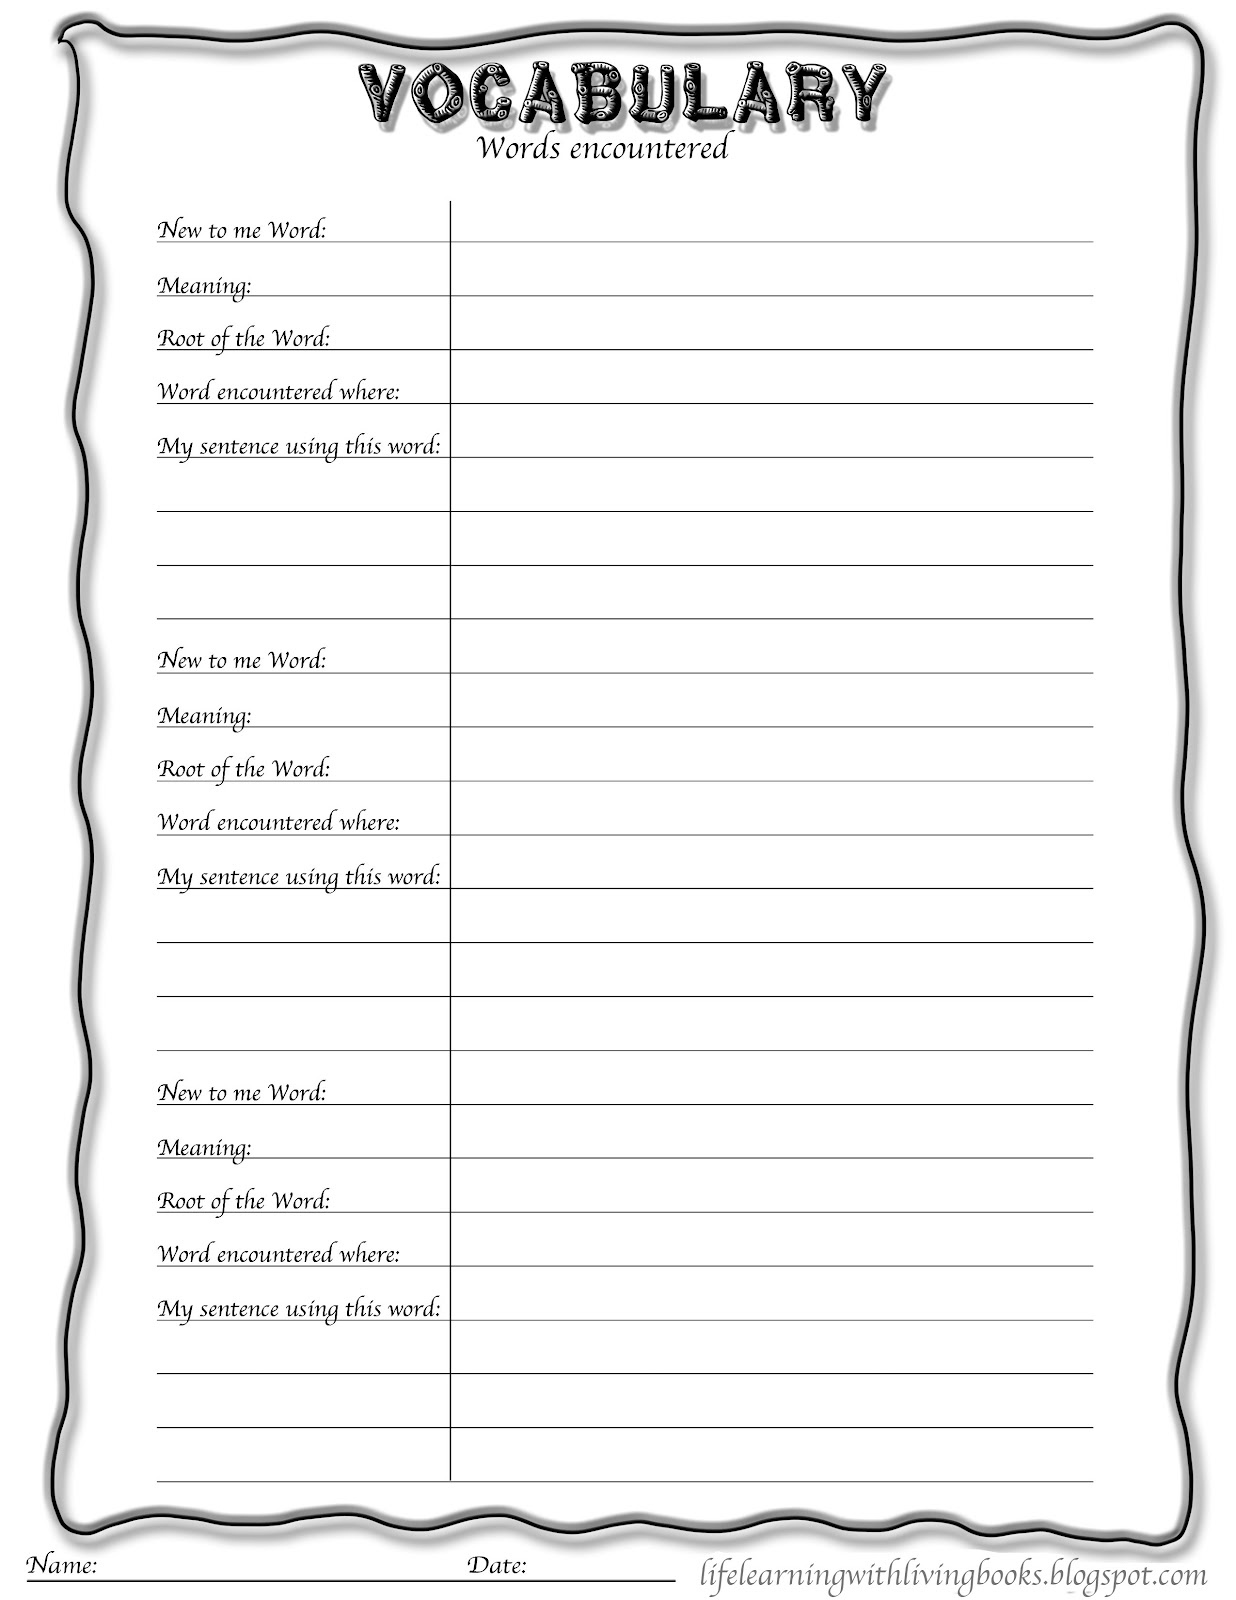 Printables Blank Vocabulary Worksheet blank vocabulary worksheet intrepidpath worksheets